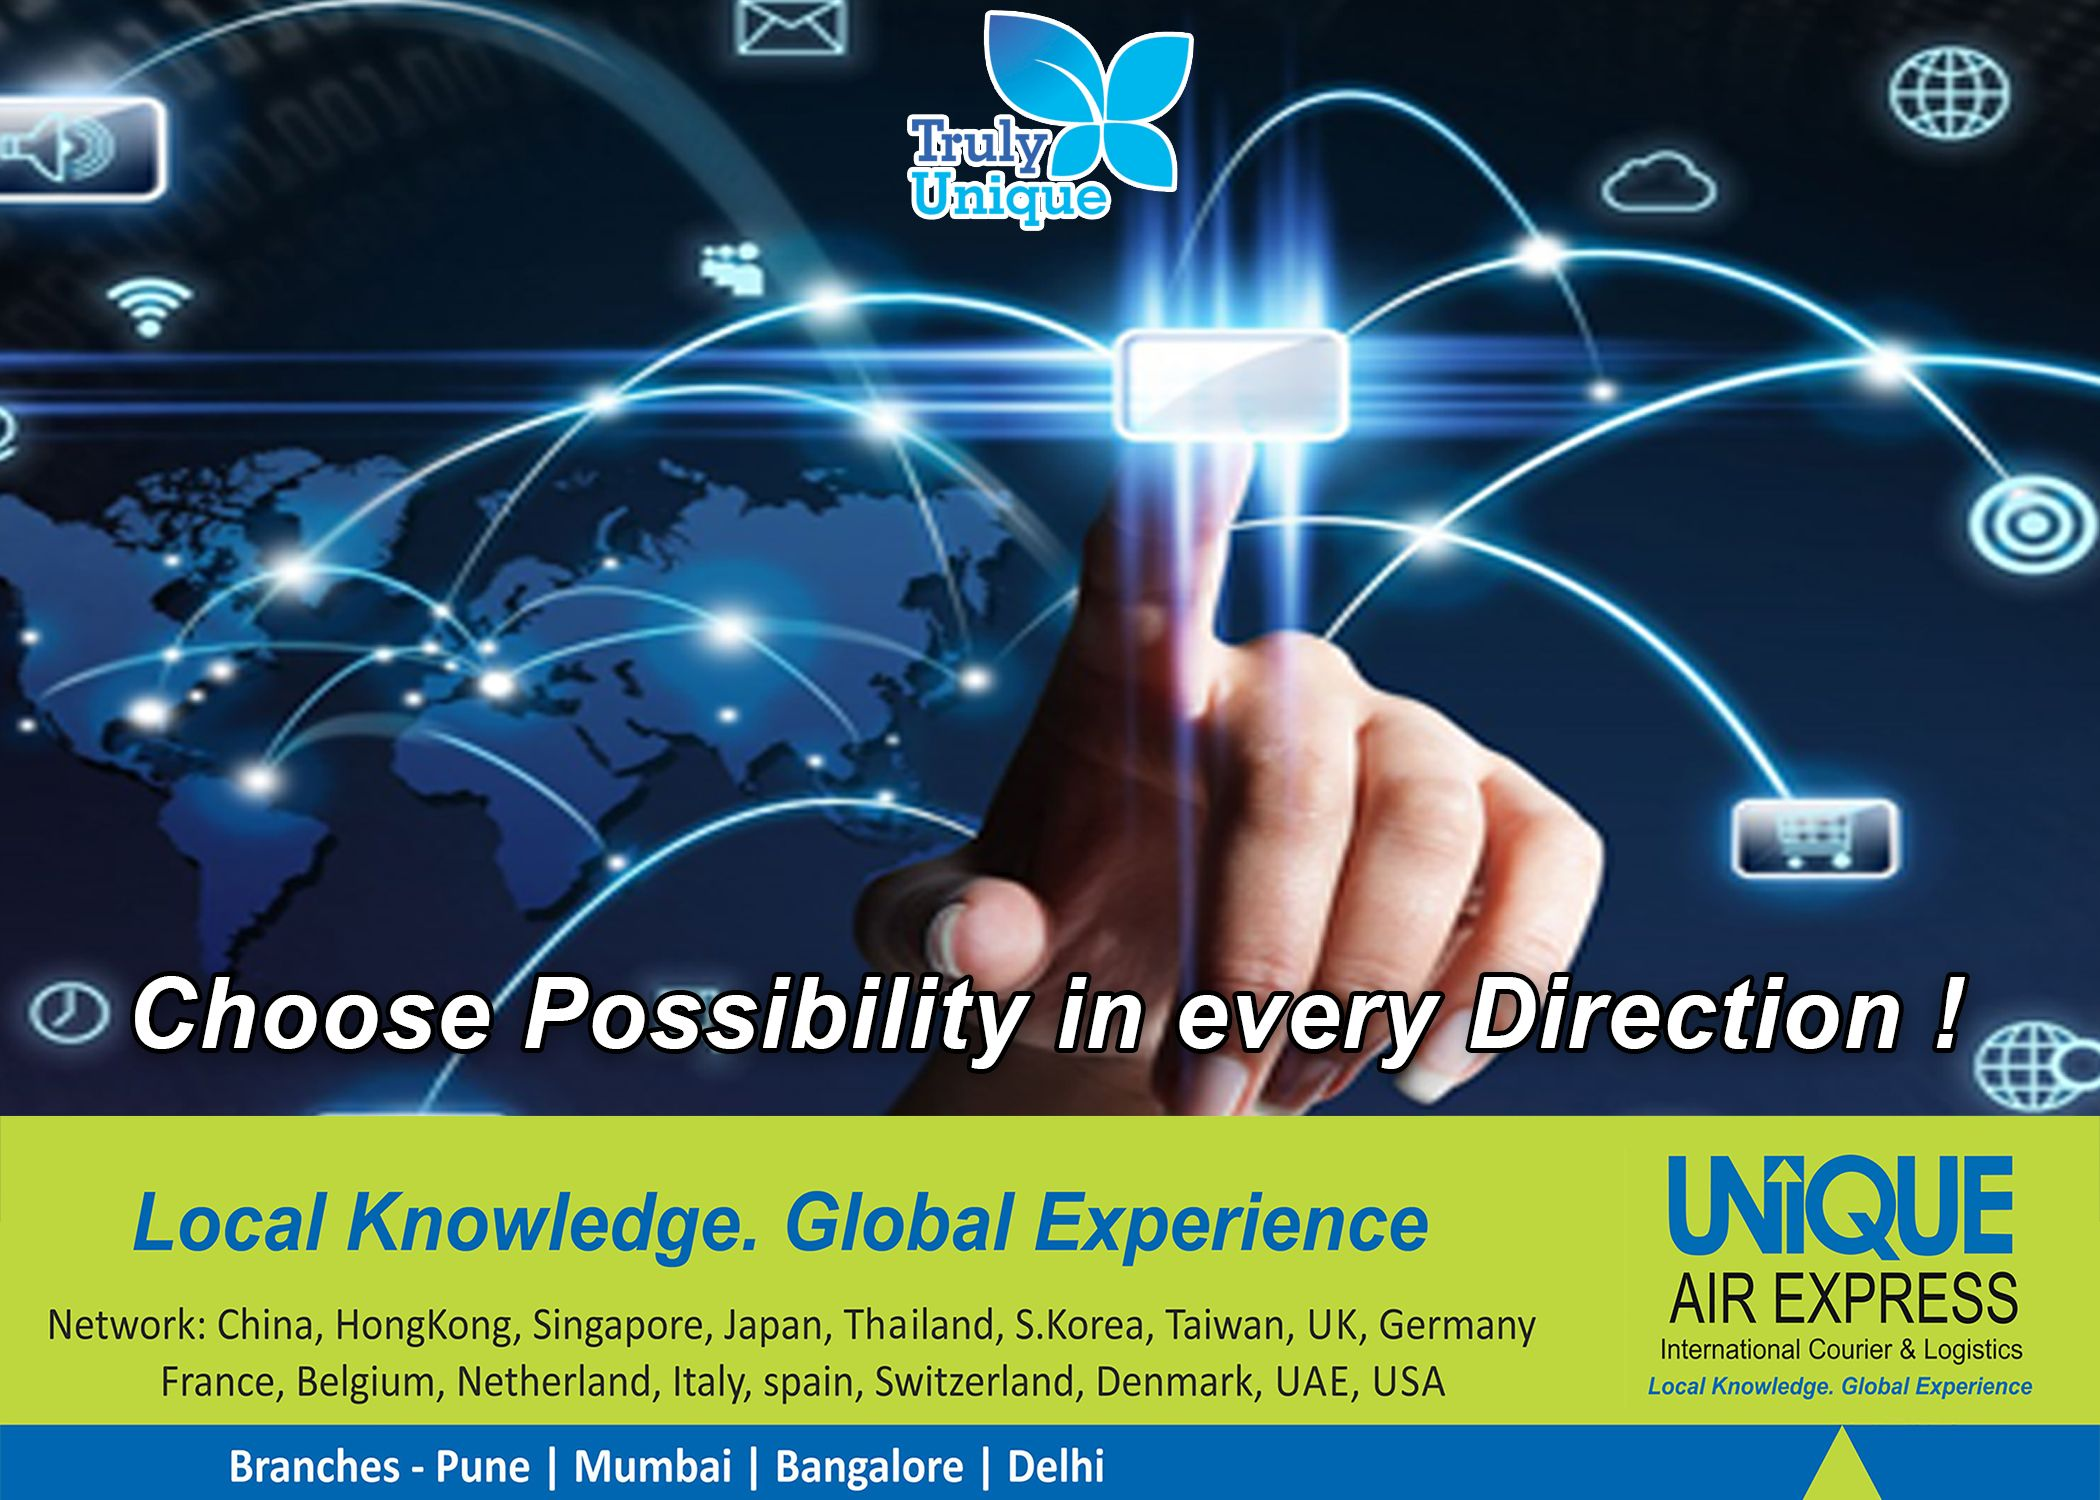 Now You Can Choose Possibility in Every Direction with